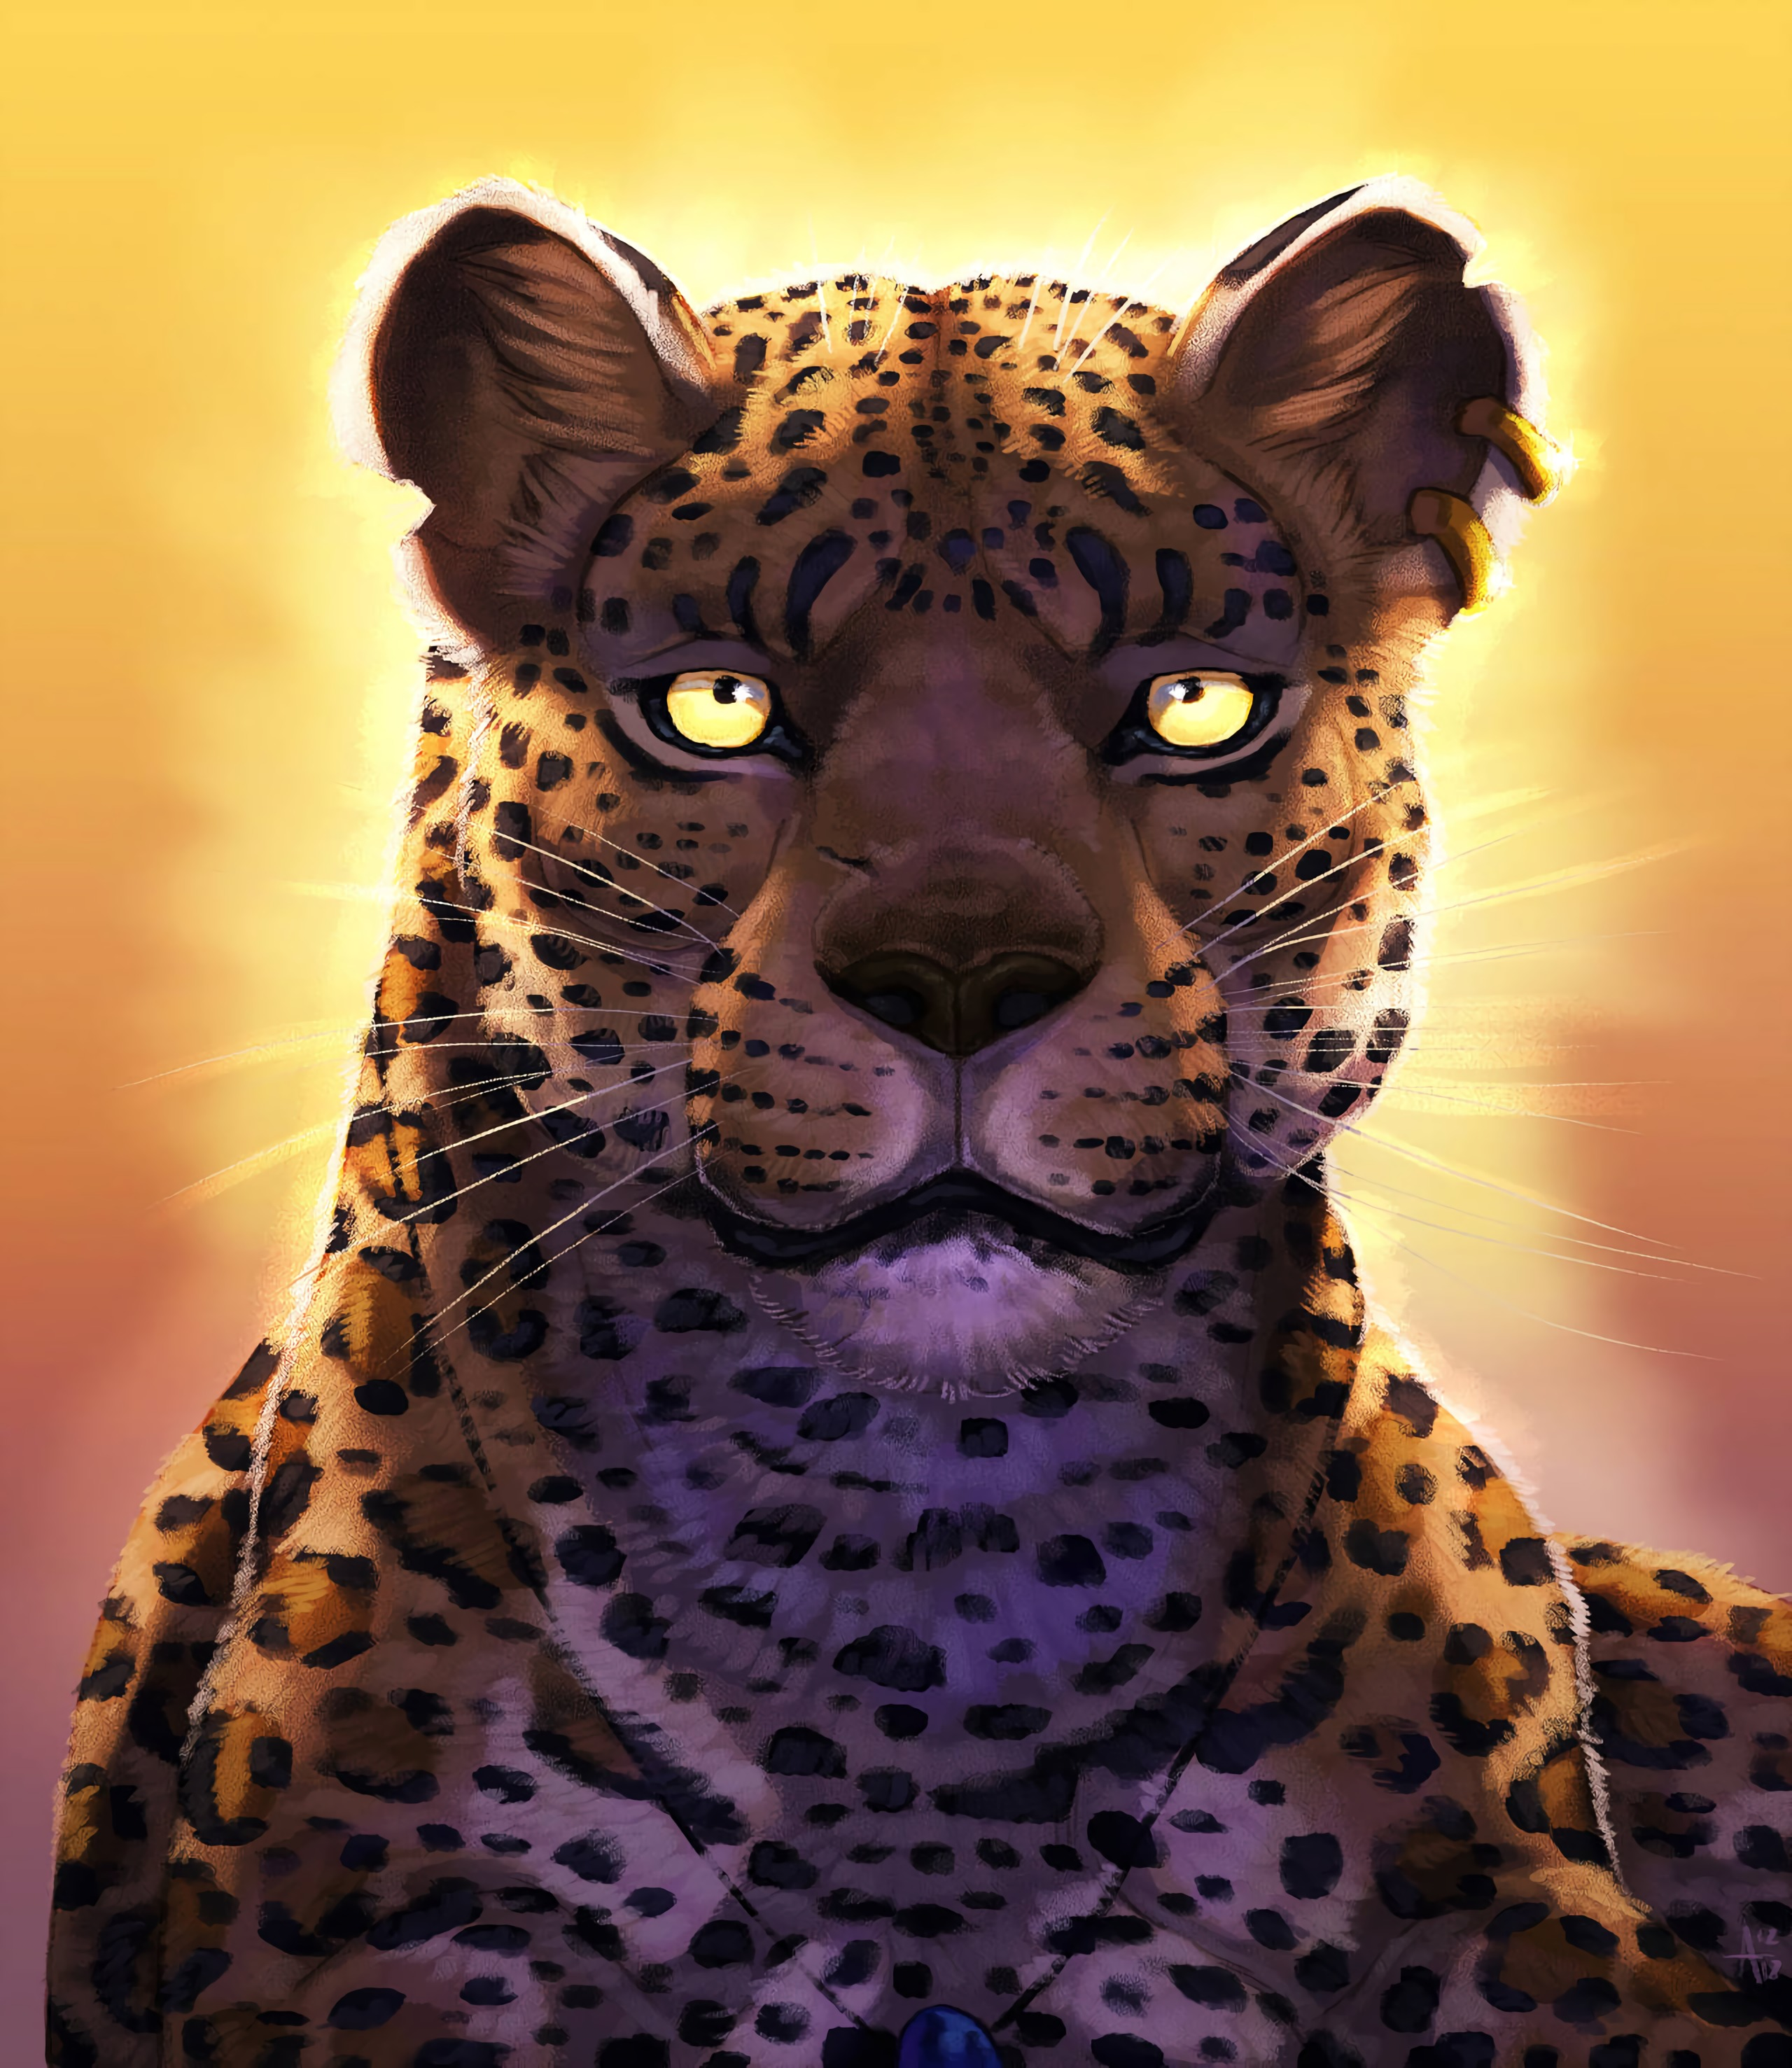 147201 download wallpaper Animals, Leopard, Muzzle, Predator, Panther screensavers and pictures for free